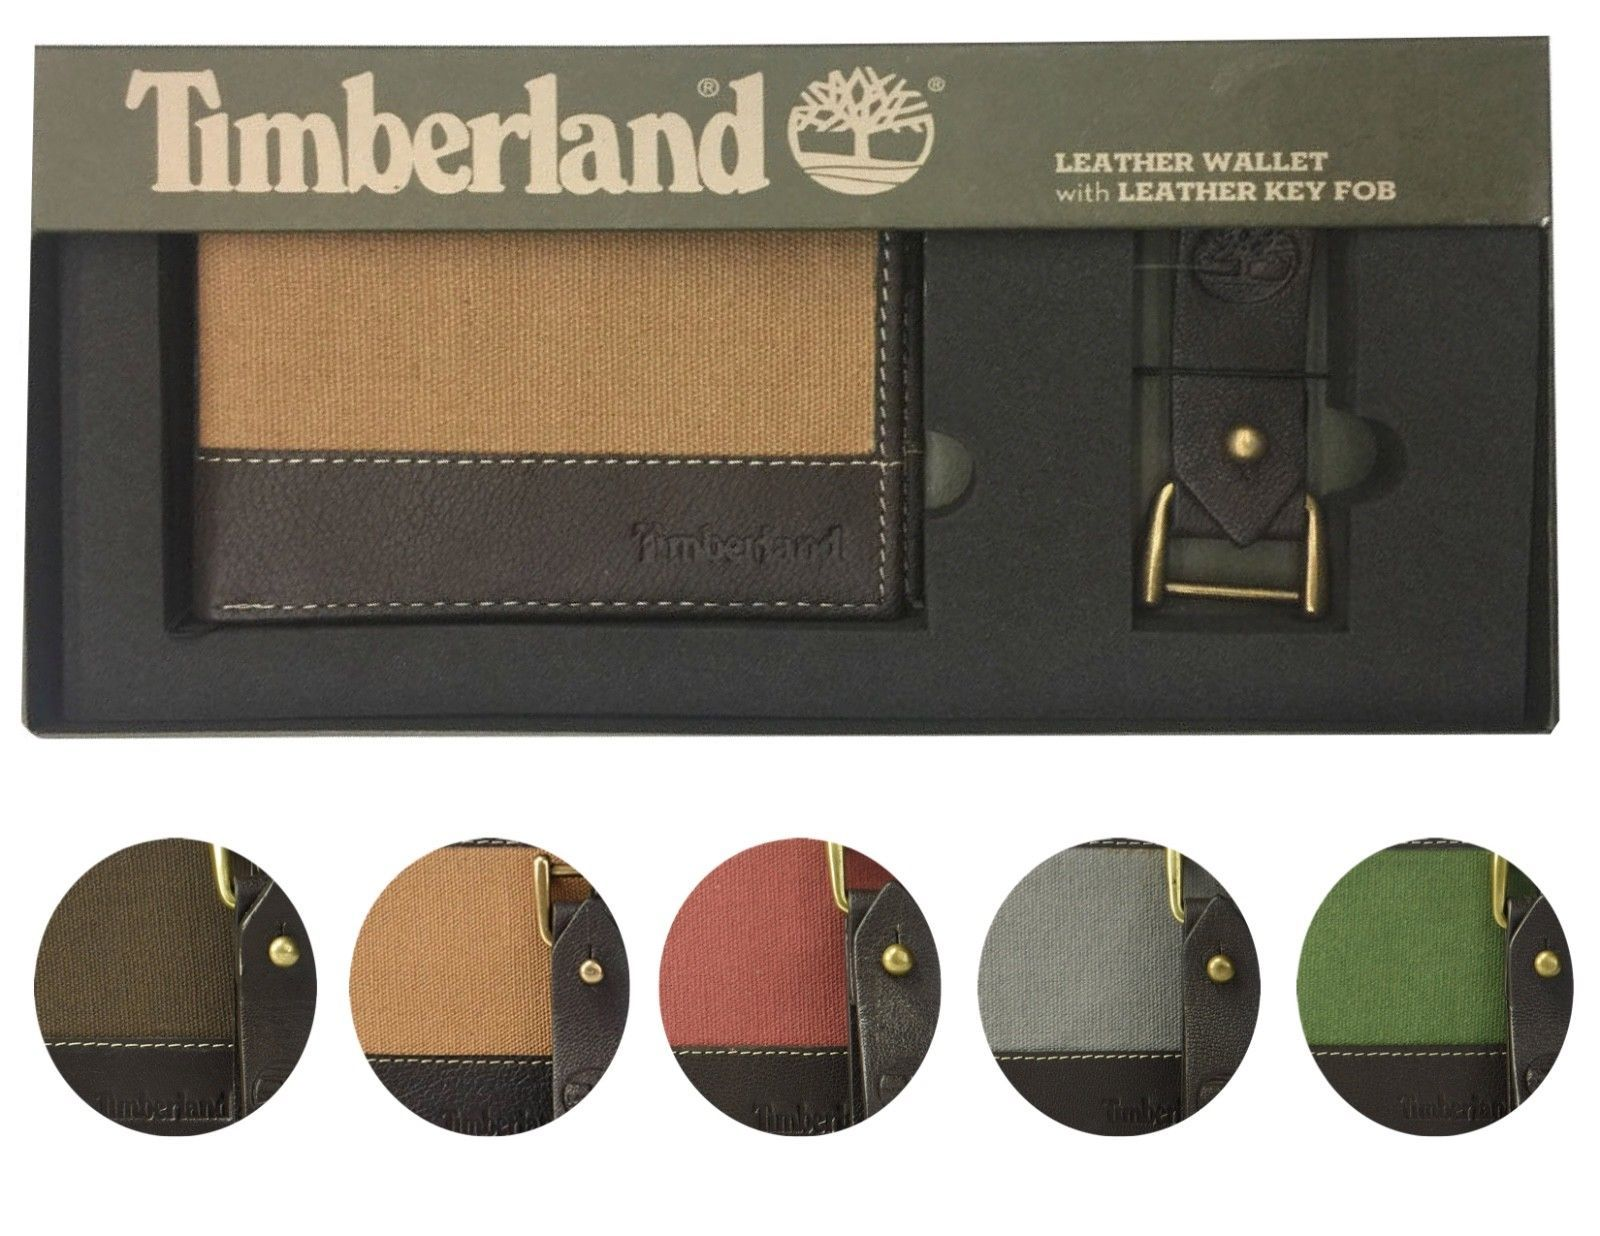 Timberland Men's Leather Credit Card ID Bifold Wallet With Key Fob Gift Box Set